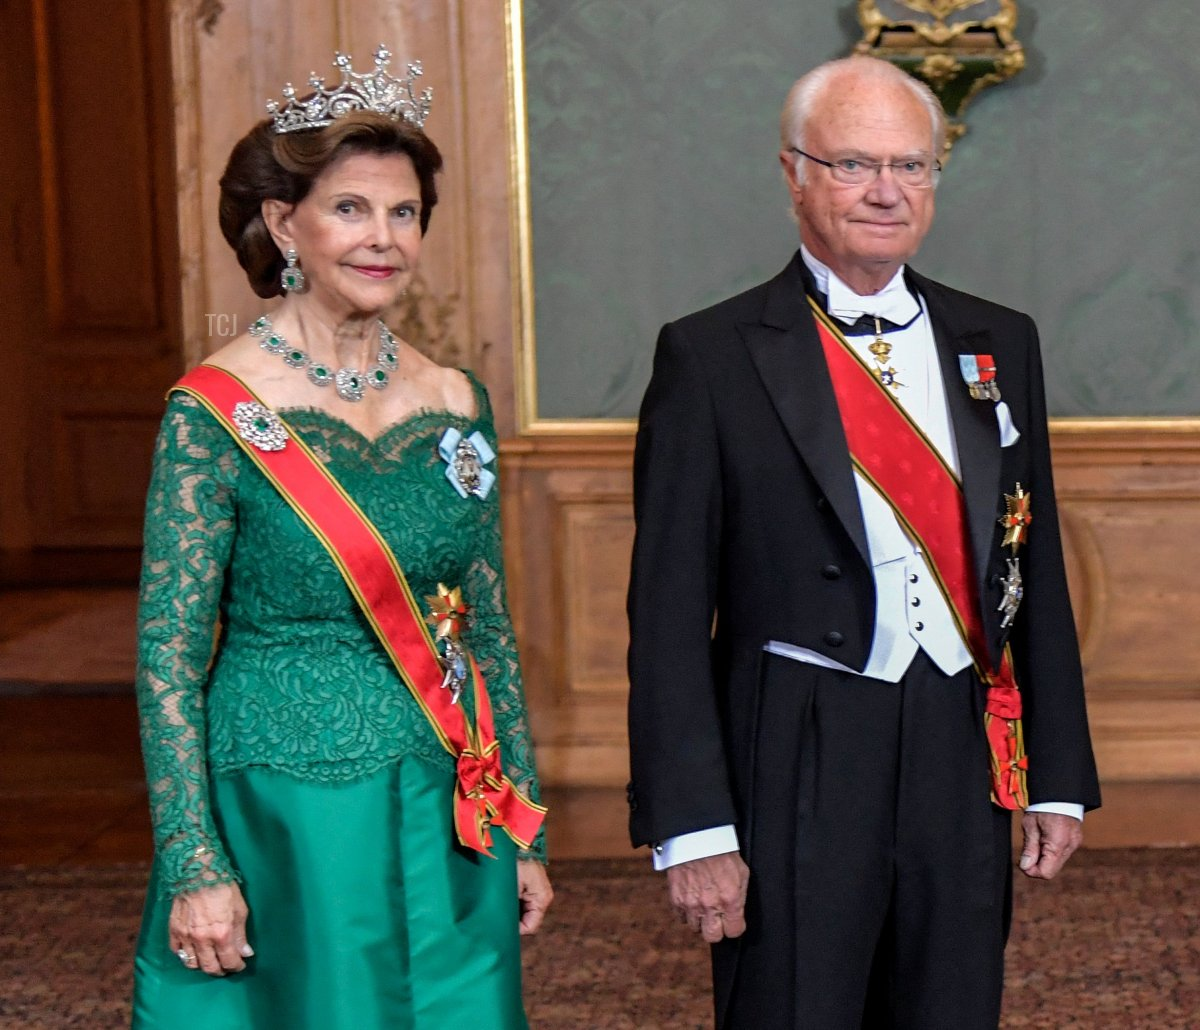 Sweden's Queen Silvia, King Carl Gustaf, German President Frank-Walter Steinmeier and his wife Elke Buedenbender pose for a photo before a State Banquet at the Royal Palace in Stockholm, on September 7, 2021